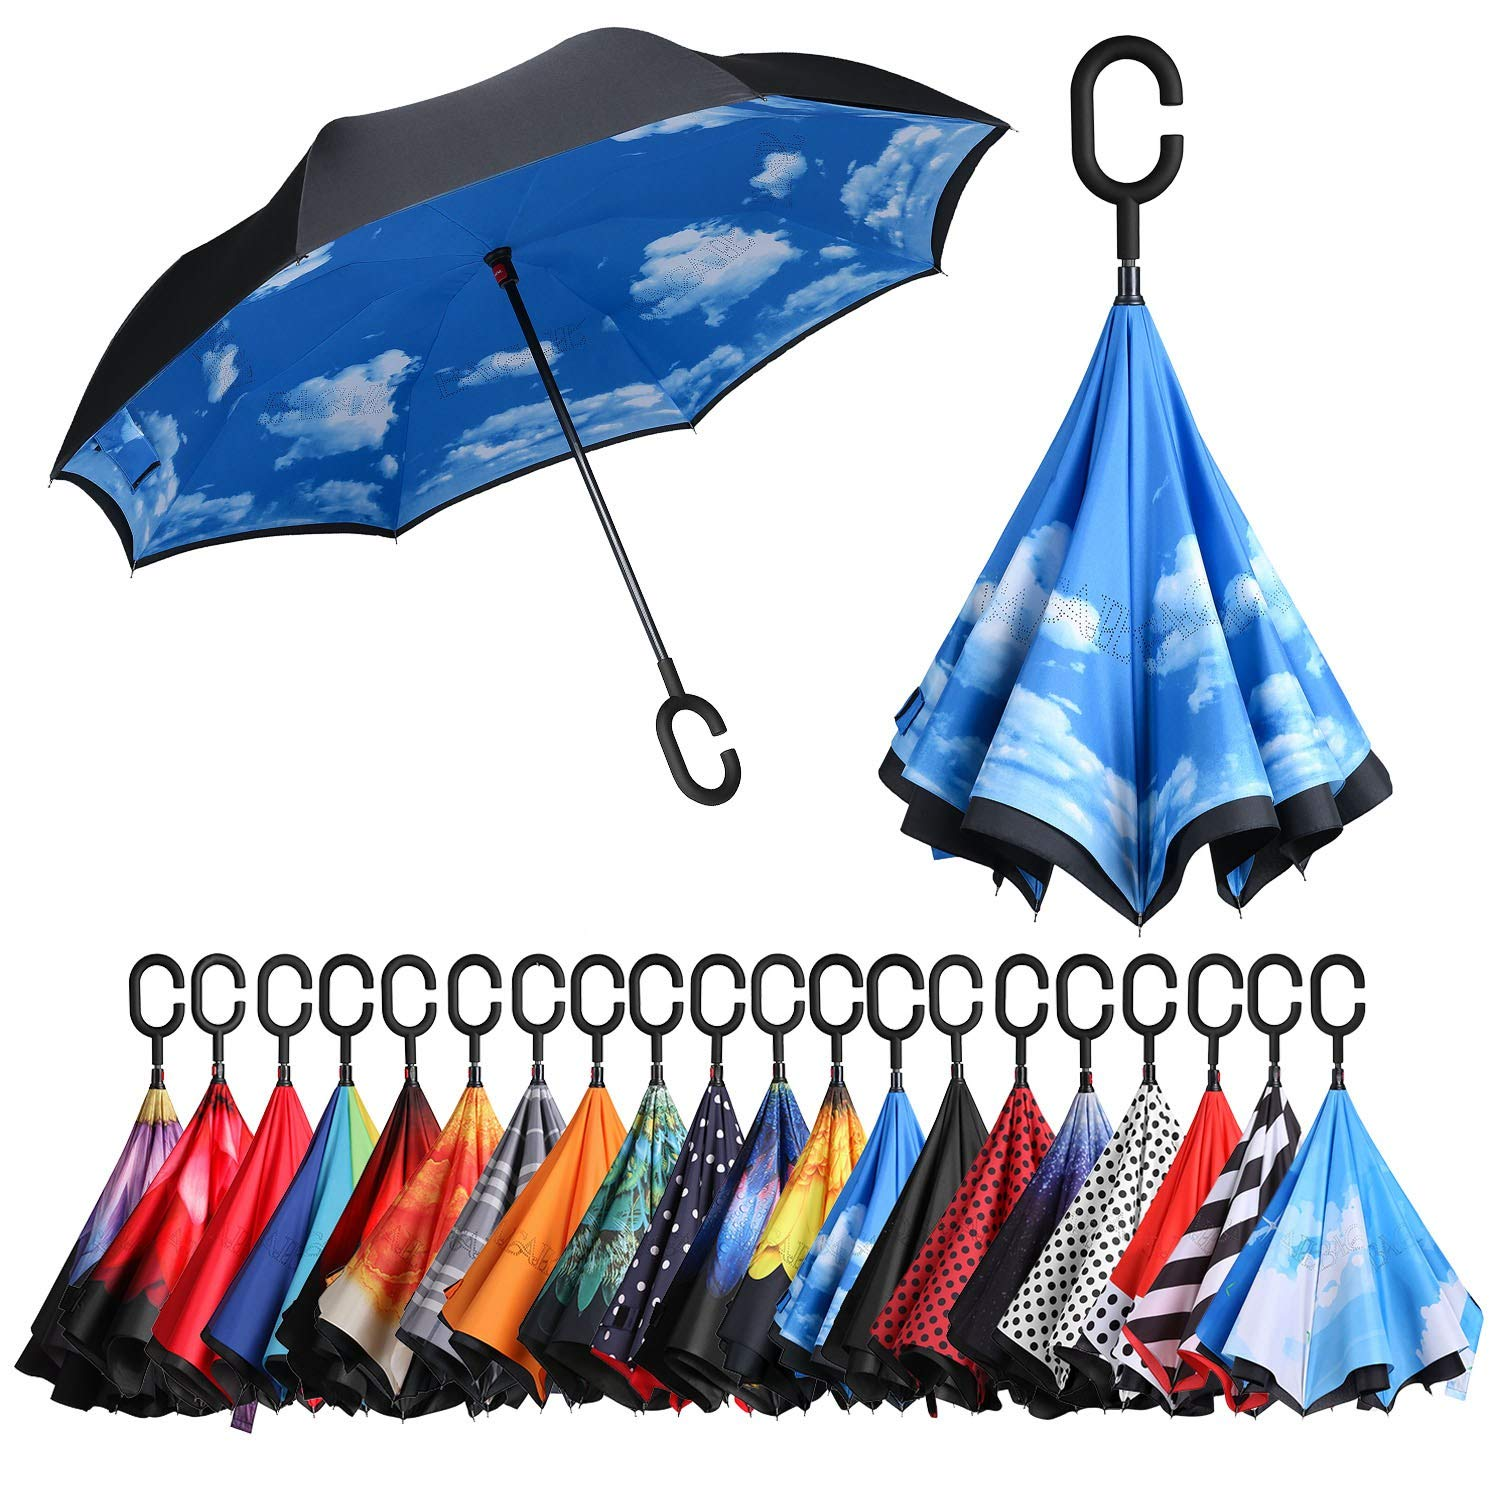 BAGAIL UV Protection Big Straight Car Rain Outdoor with C-Shaped Handle Double Layer Inverted Reverse Folding Umbrella Windproof, Sky